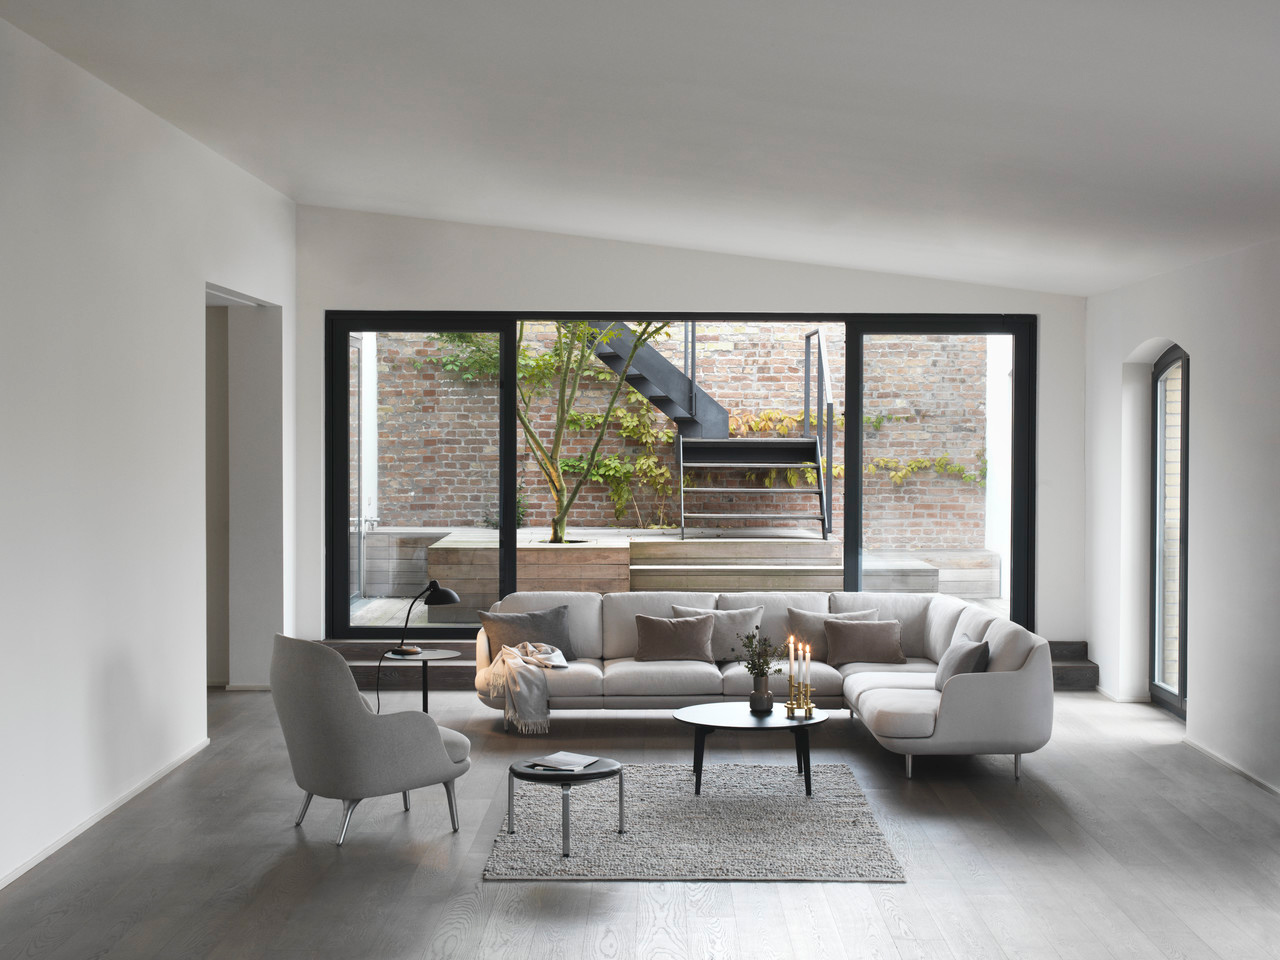 Fritz Hansen Introduces Lune – A Sofa by Jaime Hayon